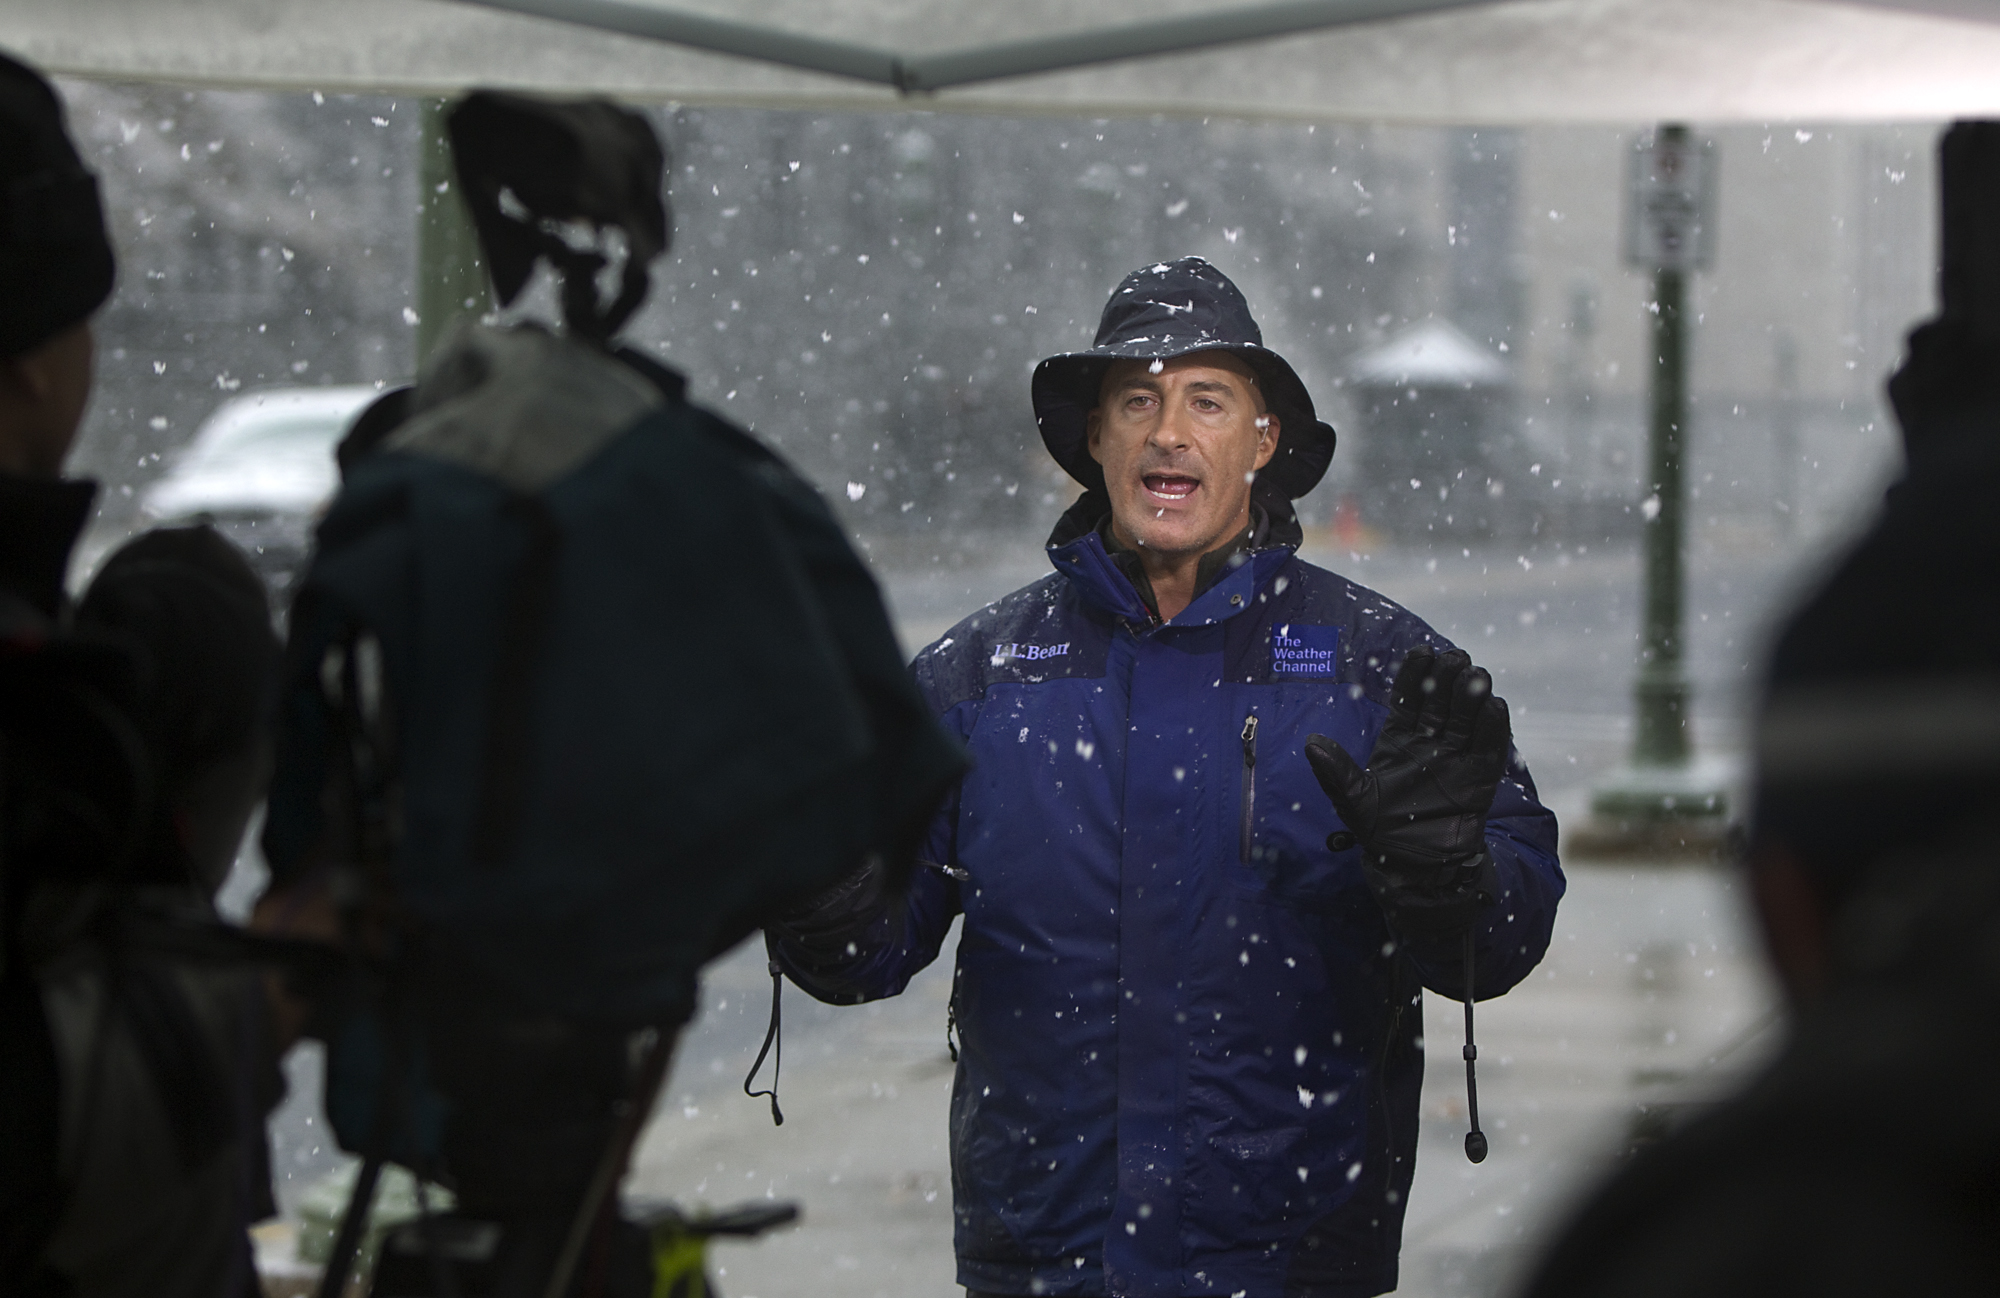 The Weather Channel host, Jim Cantore, goes live from Commonwealth Ave behind the Pennsylvania State Capitol Saturday, Oct. 29, 2011 in Harrisburg, PA